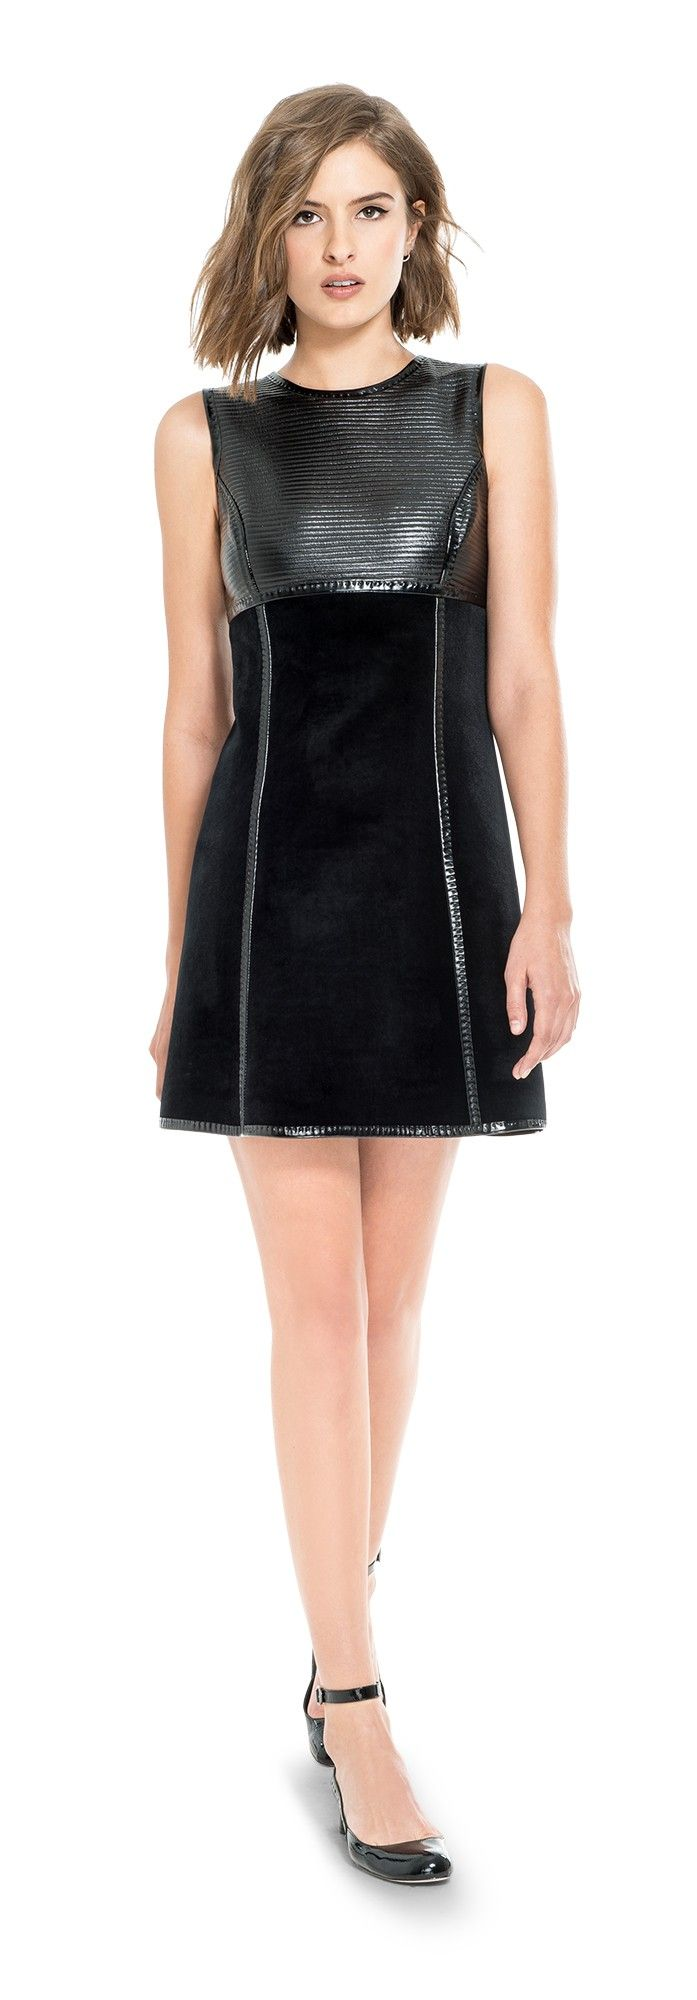 Both mod and modern, this sleeveless shift dress is an amazing find. Fashioned from plush velvet bonded to soft jersey with a ribbed patent bodice and detailed with glossy patent seams and scuba-style zipper pull, its vibe is elegant, luxe and impossibly cool. The versatile and flattering silhouette works from day into night and smartly layers over fitted long sleeved tops and under the coordinating jacket. Leon Max Collection.